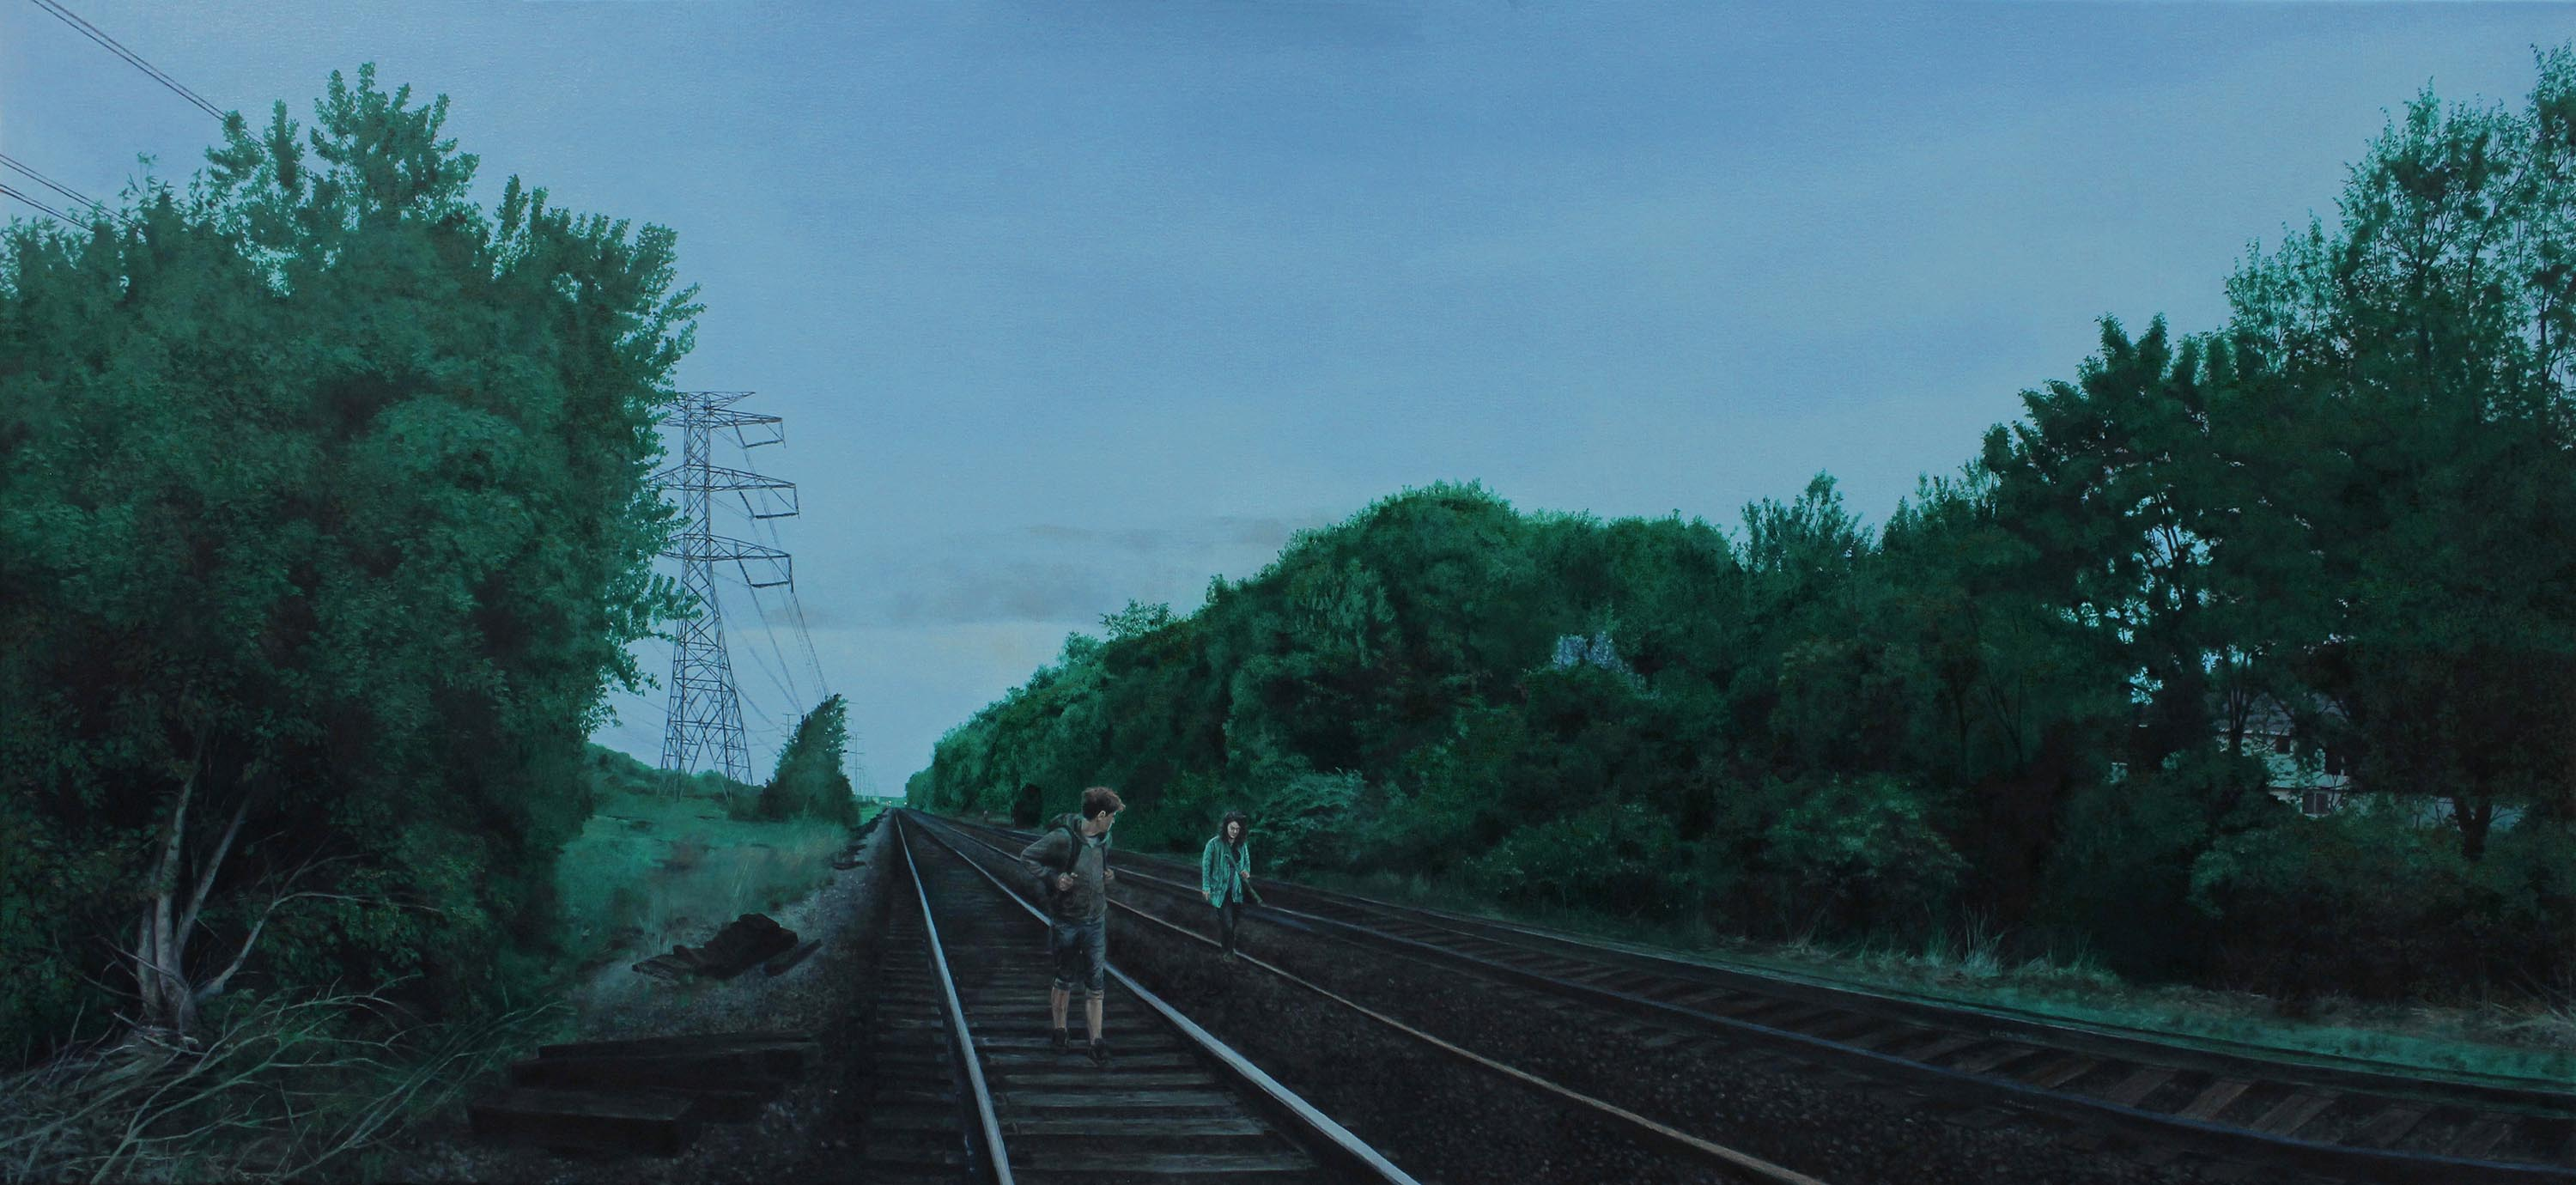 Title: Coon Rapids, Minnesota Year: 2015 Medium: Oil on Canvas Dimensions: 26 x 56 inches